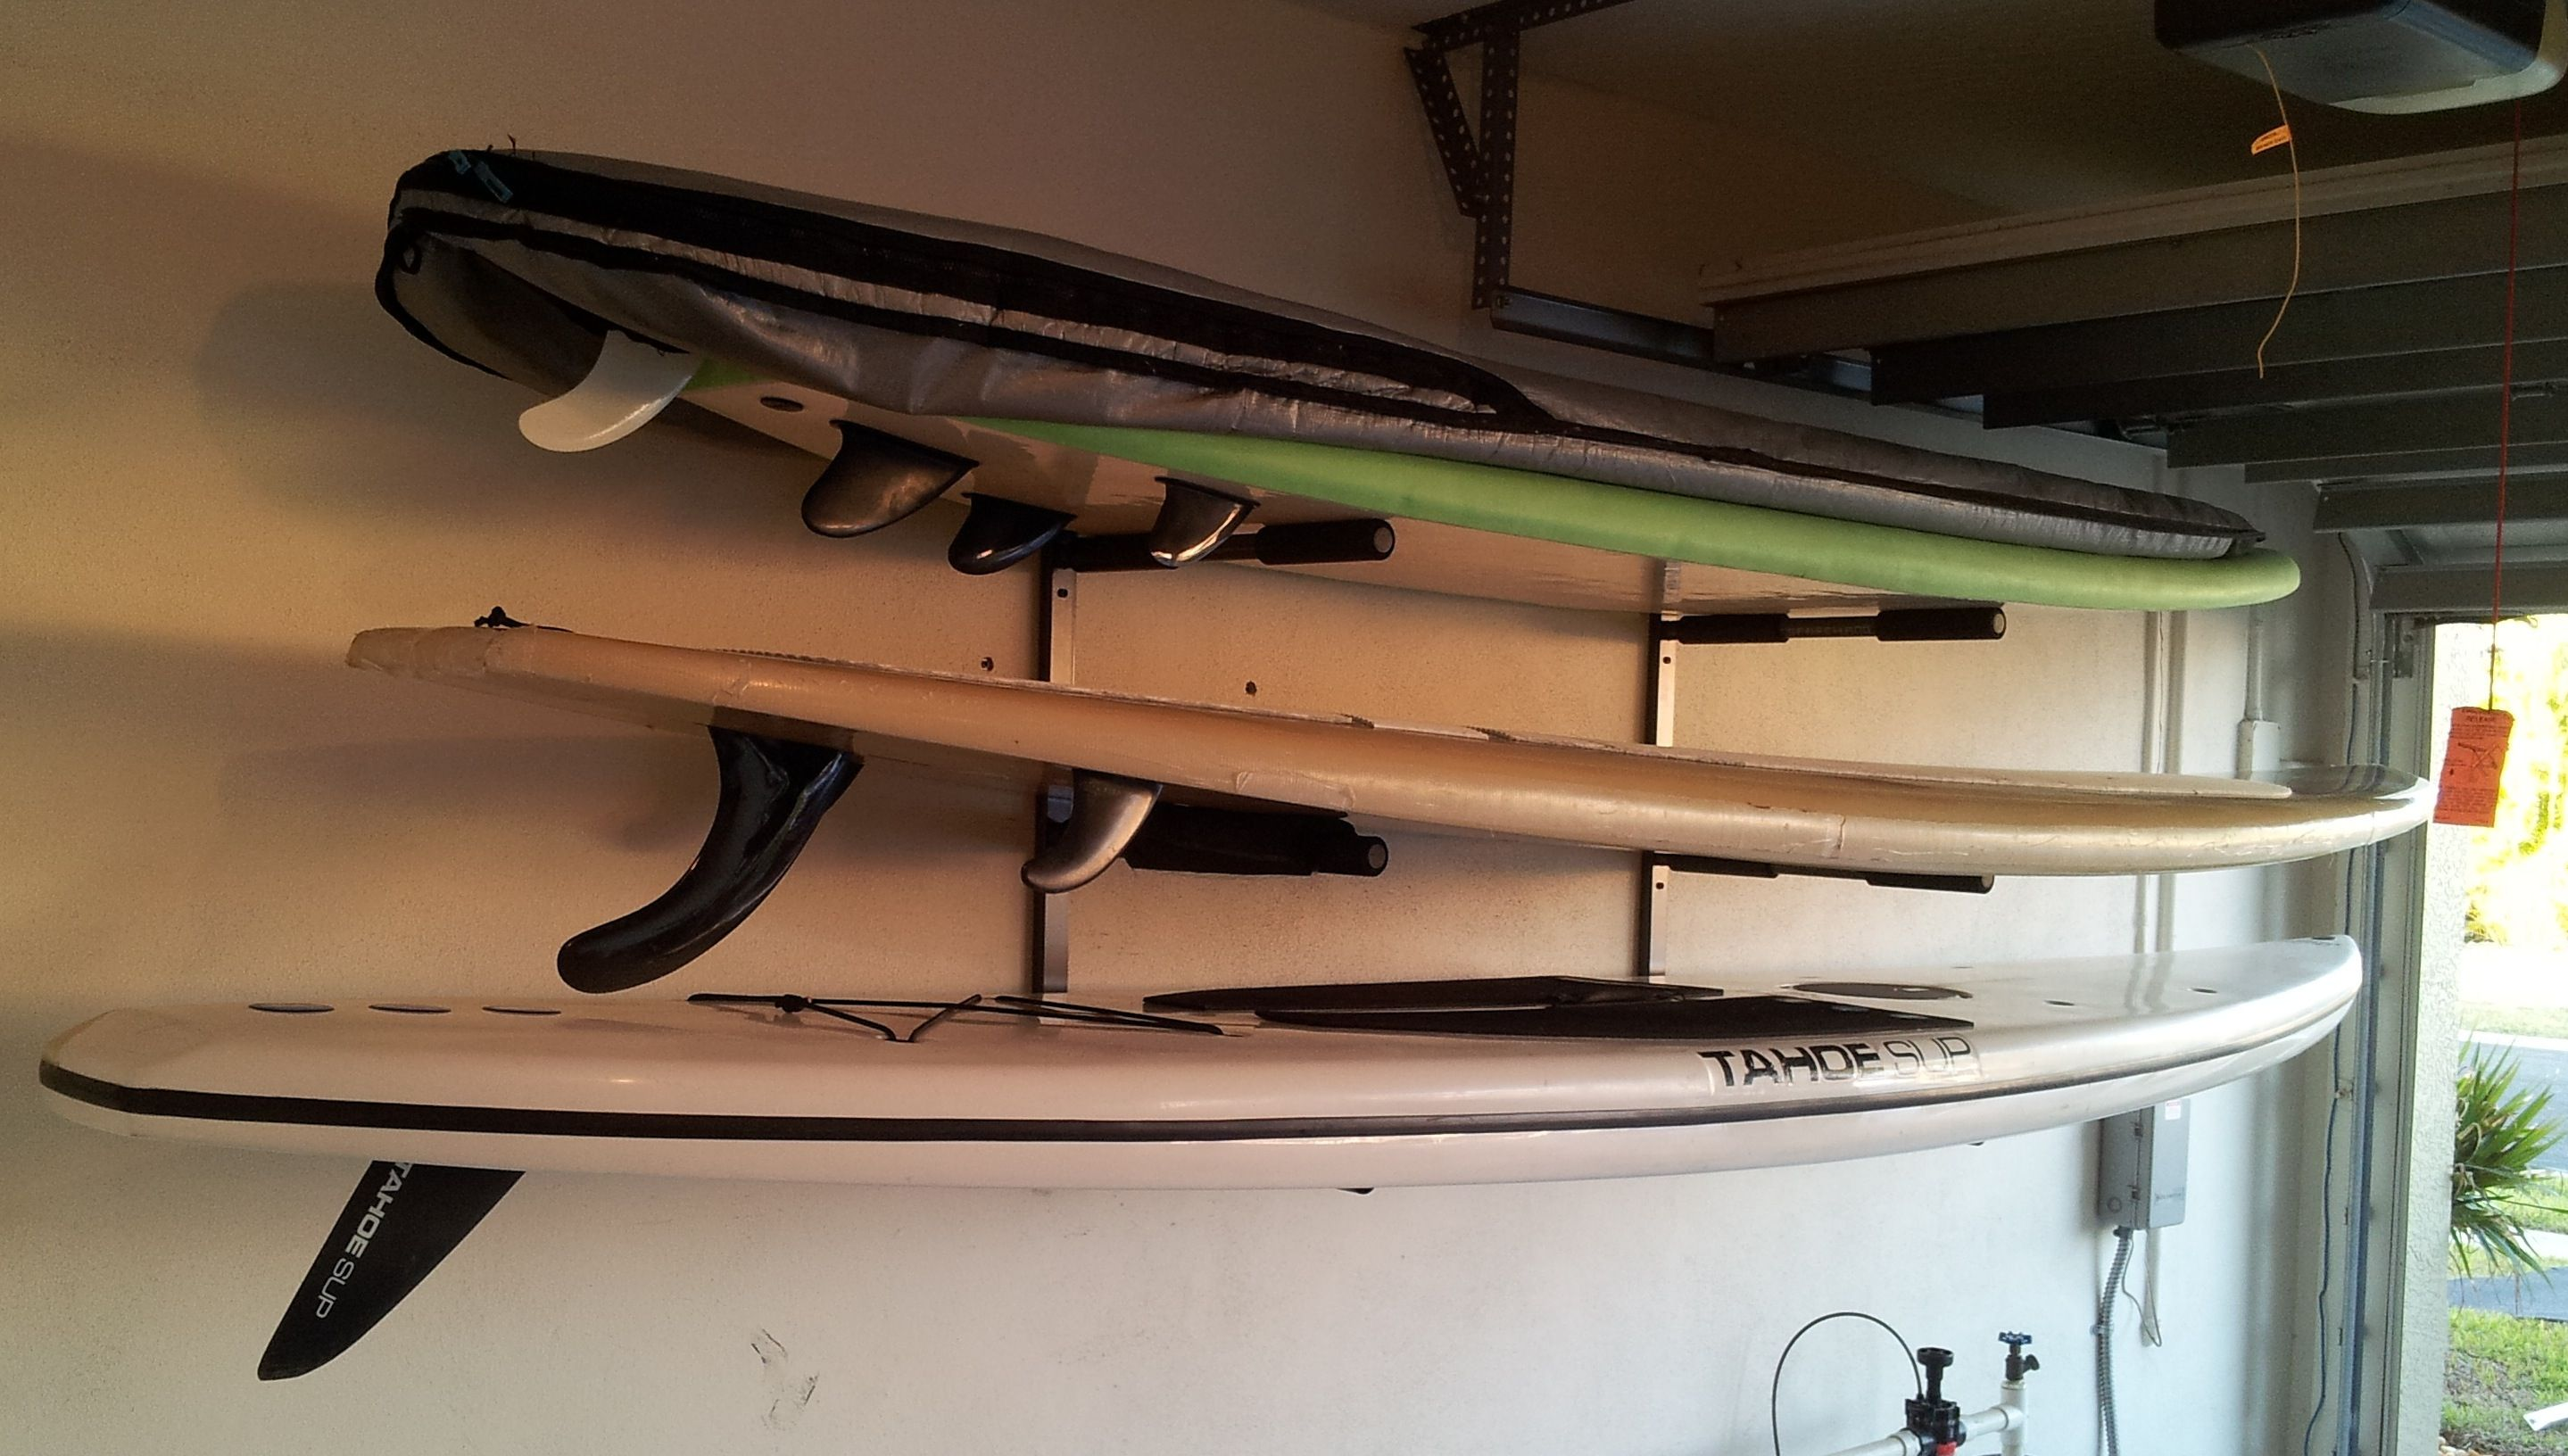 rack that storage for must of garage free size ideas standing you car plans pvc full kayak trailer supreme truck diy see